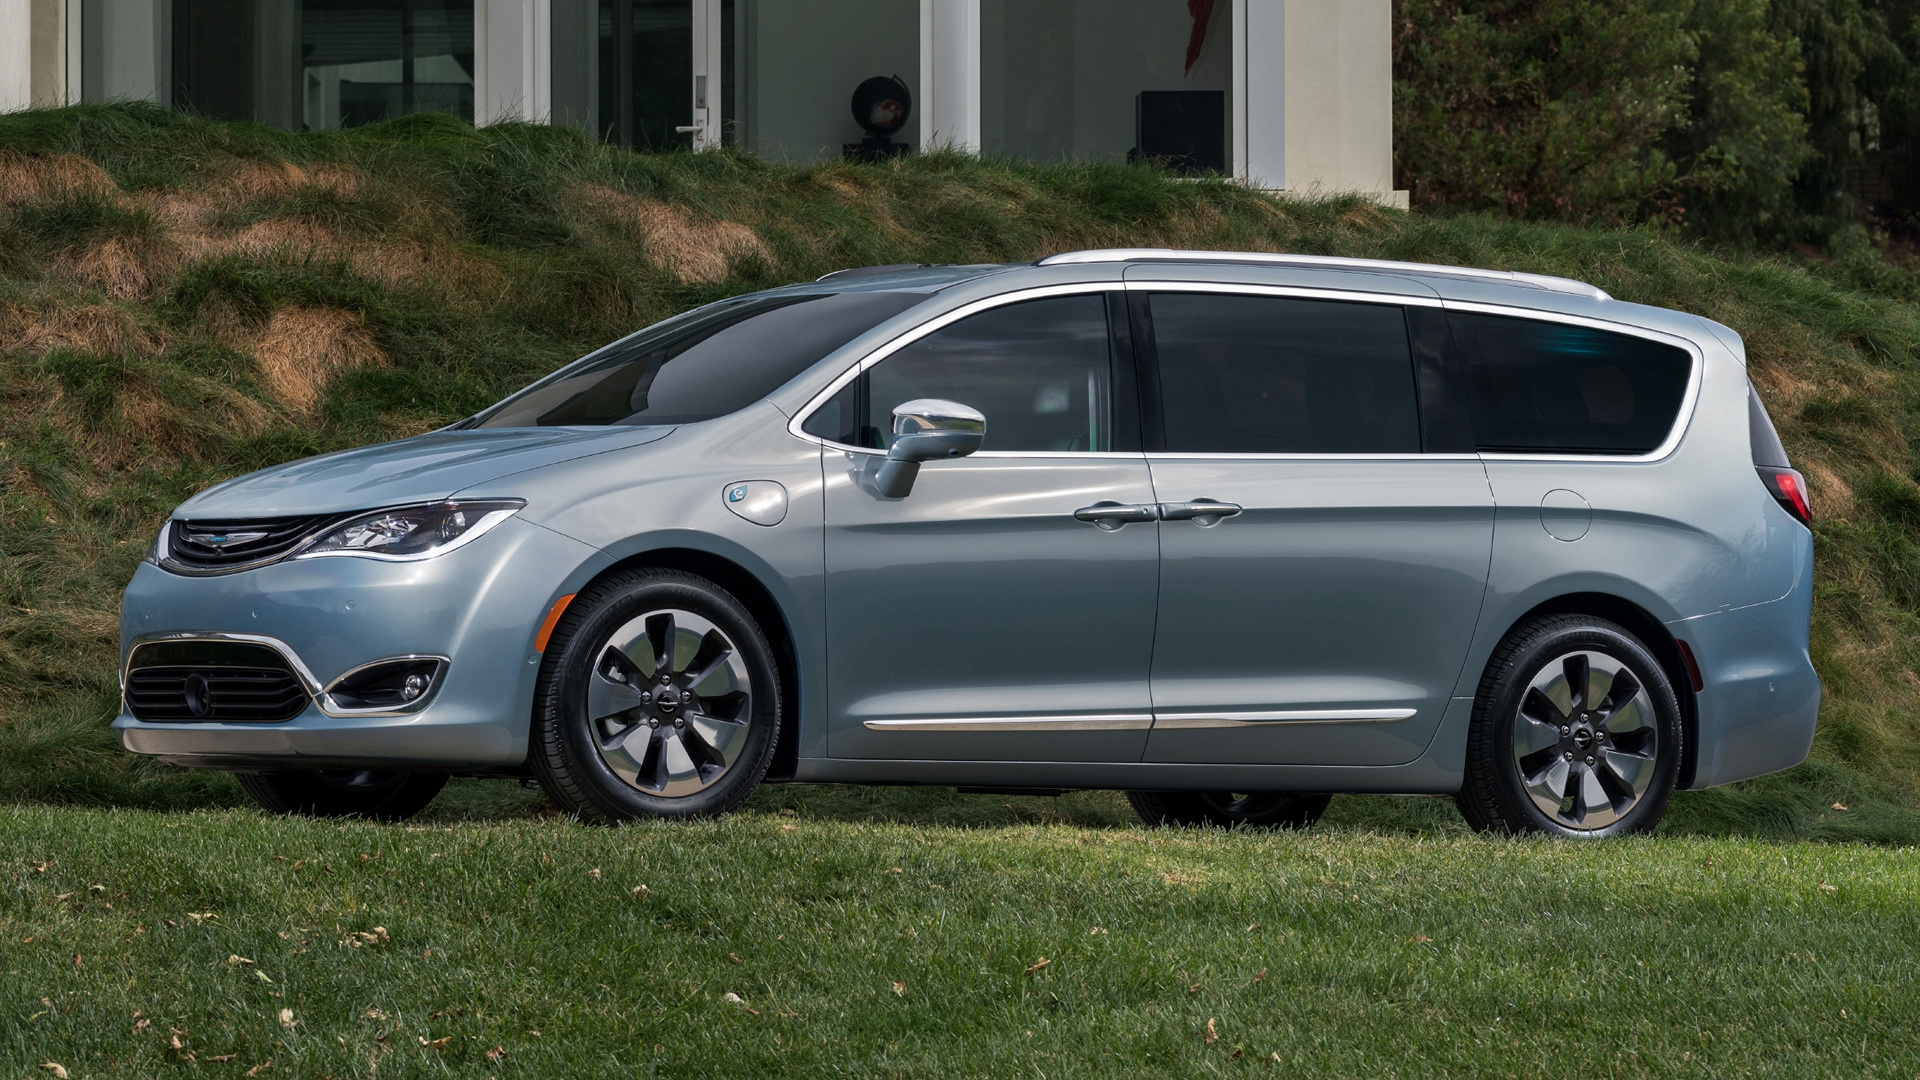 2017 chrysler pacifica hybrid wallpapers and hd images. Black Bedroom Furniture Sets. Home Design Ideas